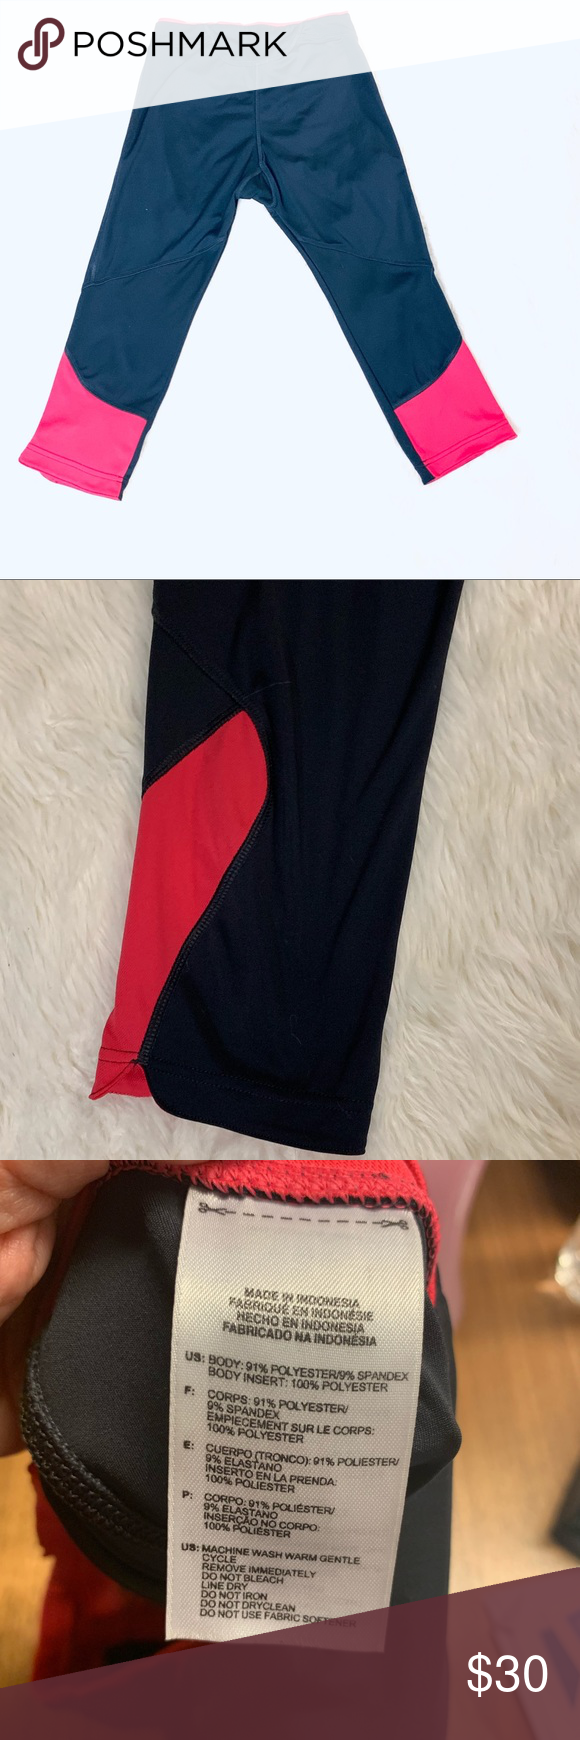 """ADIDAS CROP TIGHTS size SMALL Details: adidas crop tights. Black with hot pink trim. Tight fit  Brand: Adidas  Size: Small  Color: black and pink Retail: 79 Style: crop tights  Material: polyester/spandex  Measurements: waist 12"""" measured across unstretched Inseam 17""""  Length 26"""" measured from waist to hem.  Condition excellent condition no pilling at the crotch (see last picture)  #0289 adidas Pants Ankle & Cropped"""